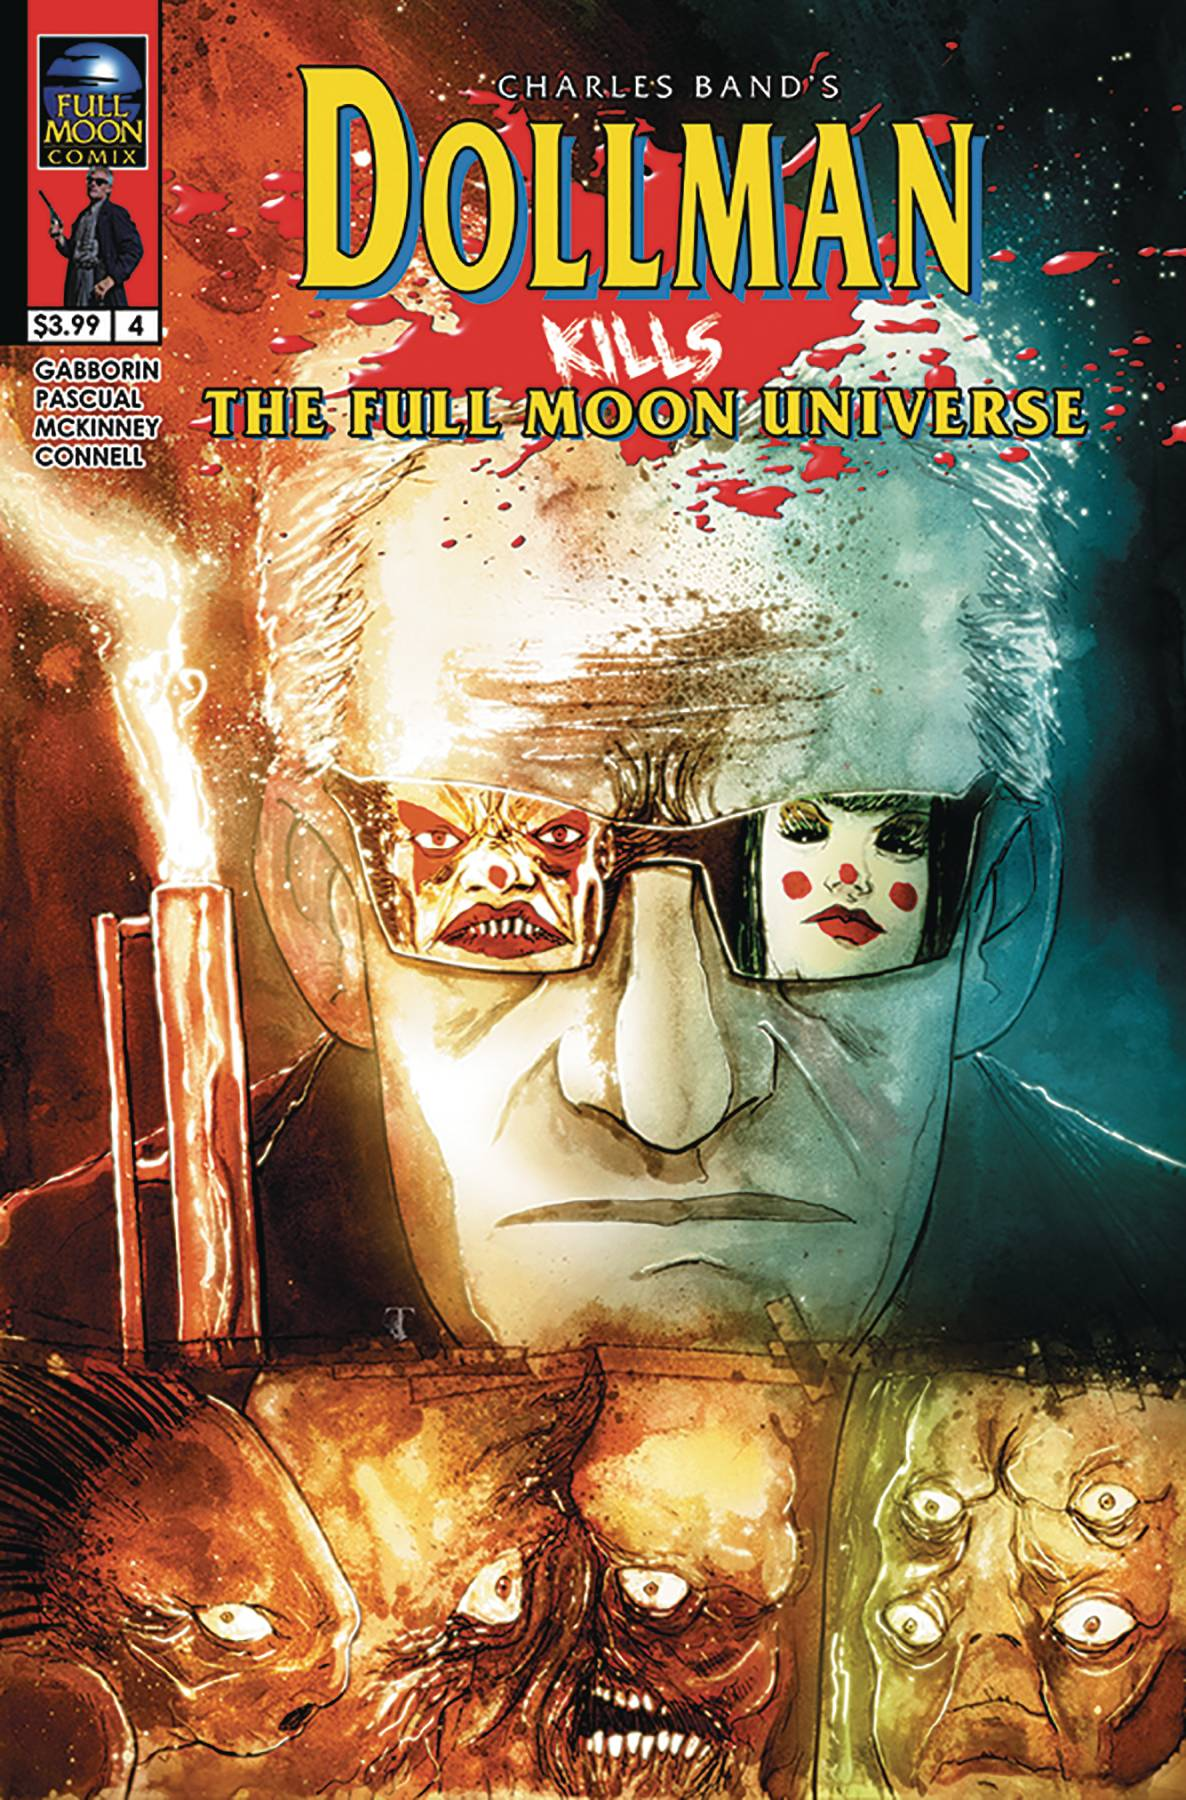 DOLLMAN KILLS THE FULL MOON UNIVERSE #4 (OF 6) CVR A TEMPLES